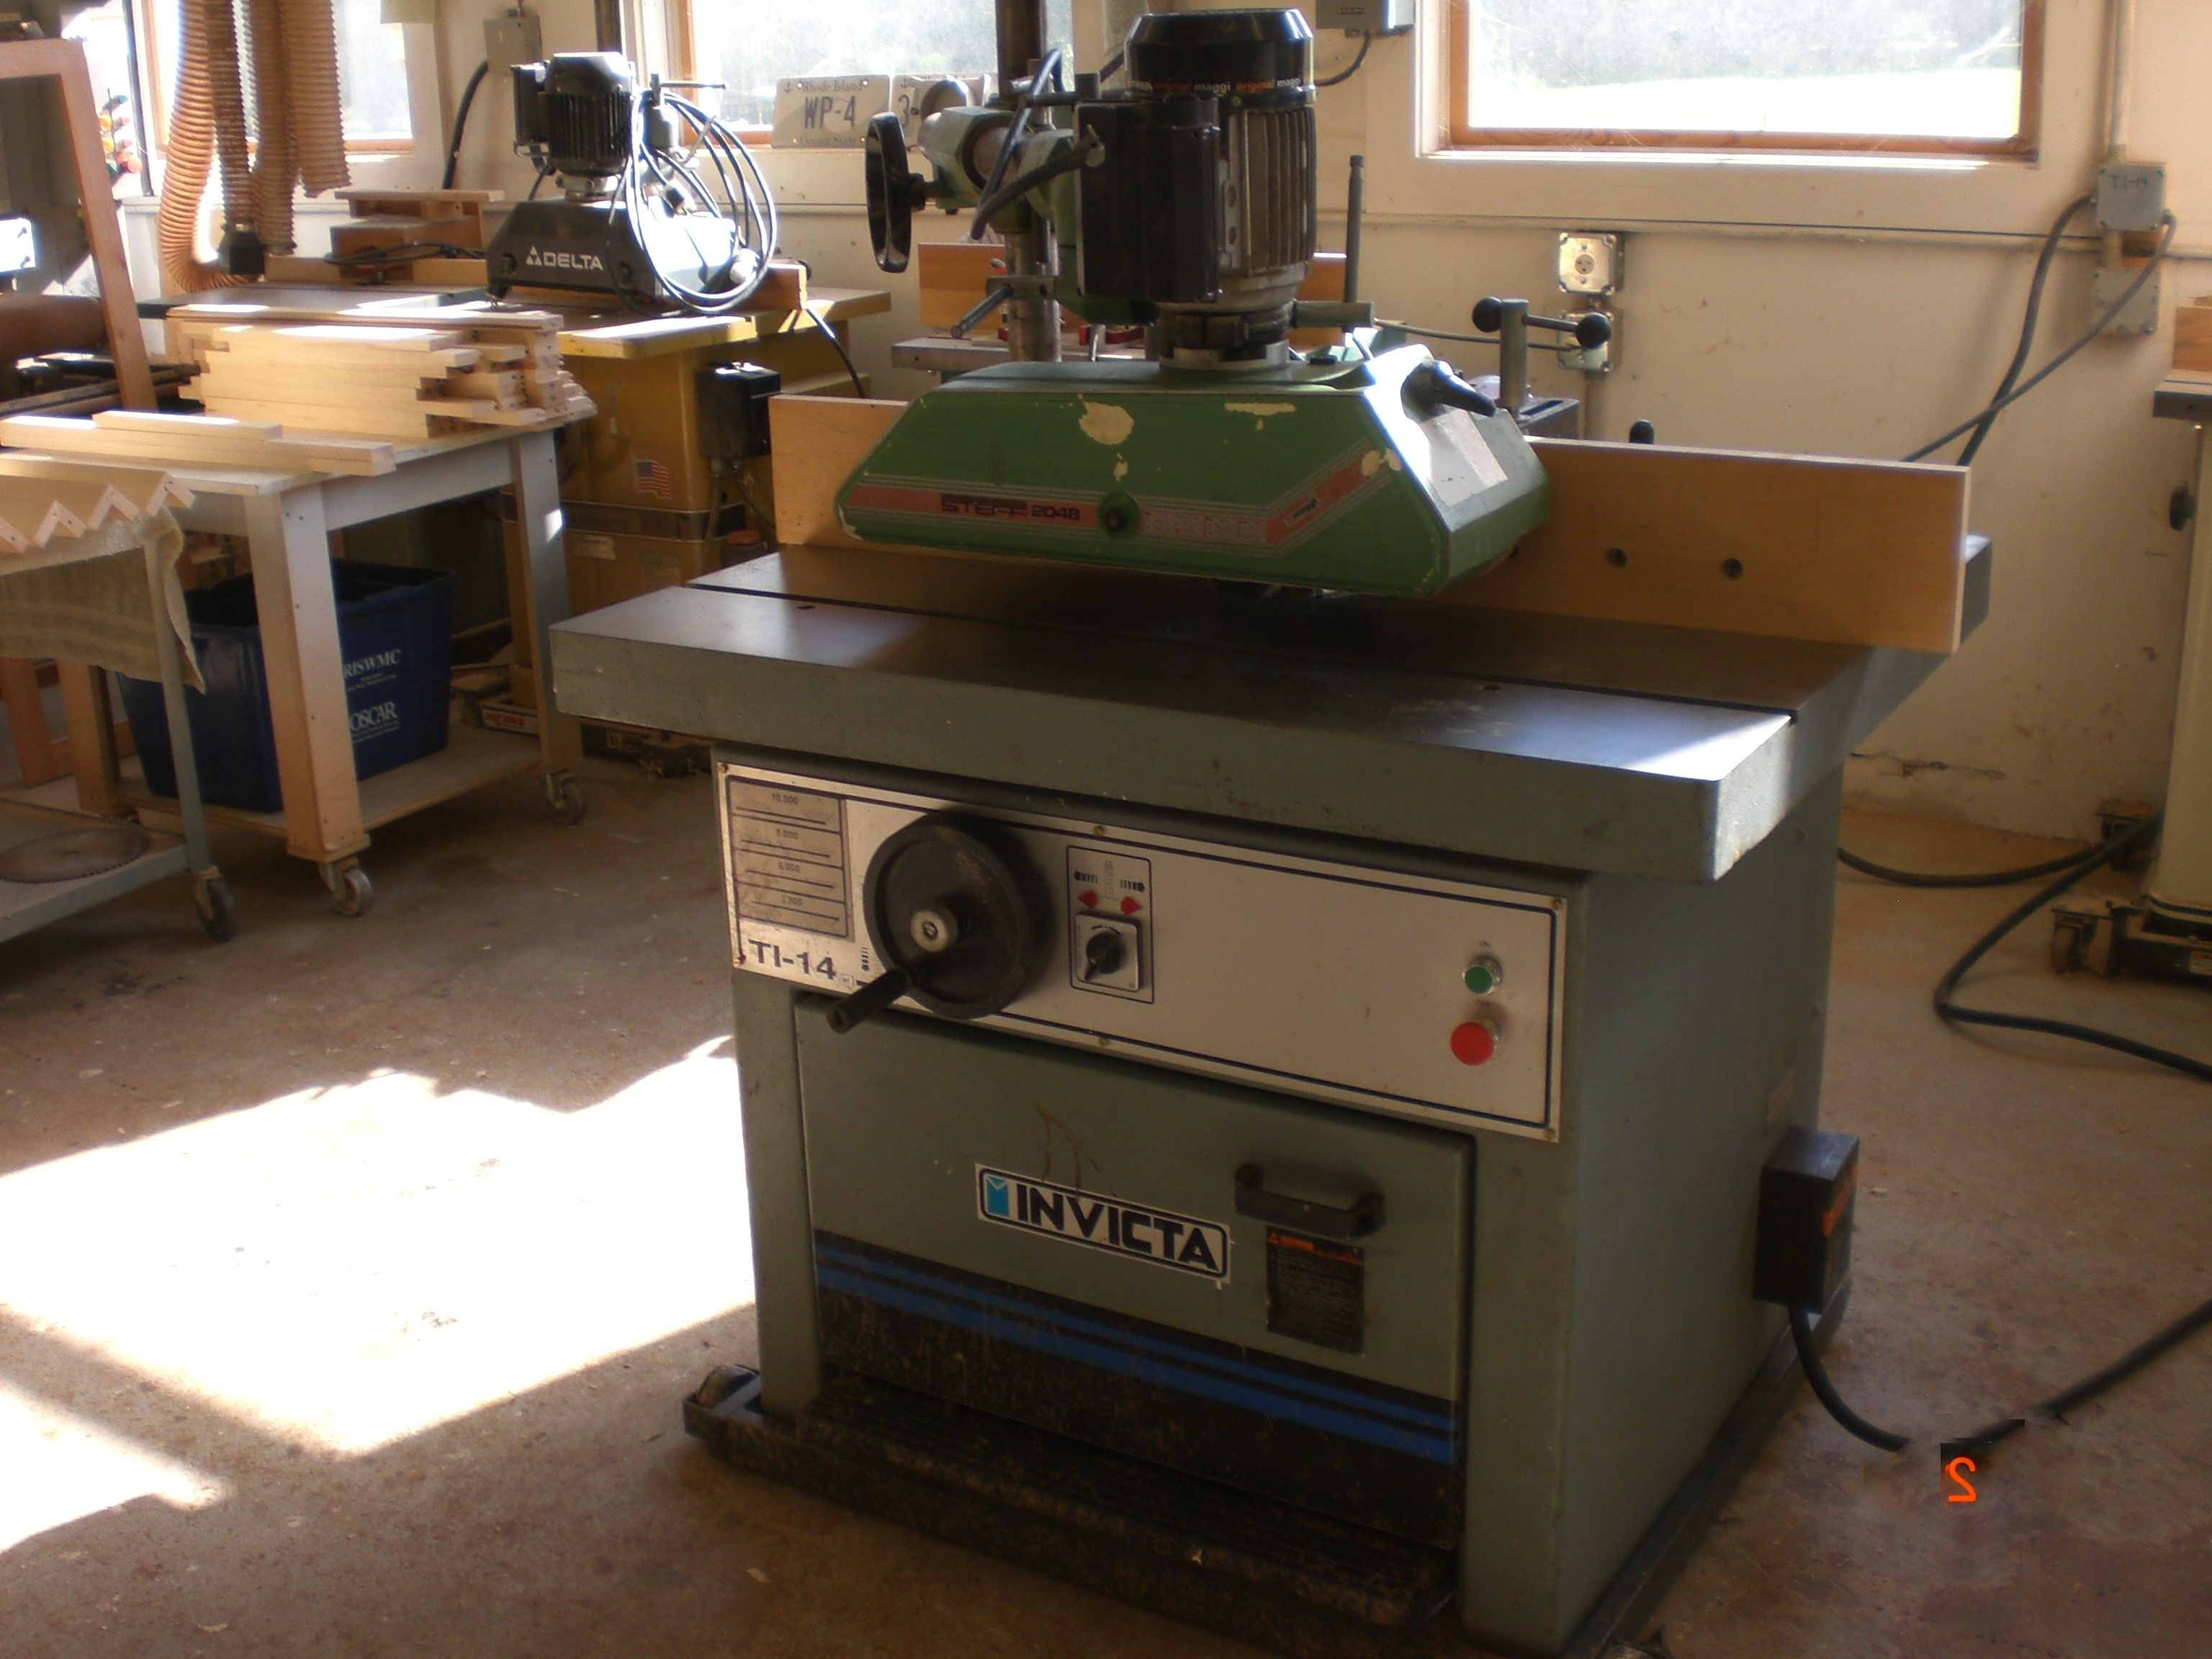 Invicta Ti 14 Shaper With Power Feed Used Woodworking Machinery Shaper Machinery For Sale